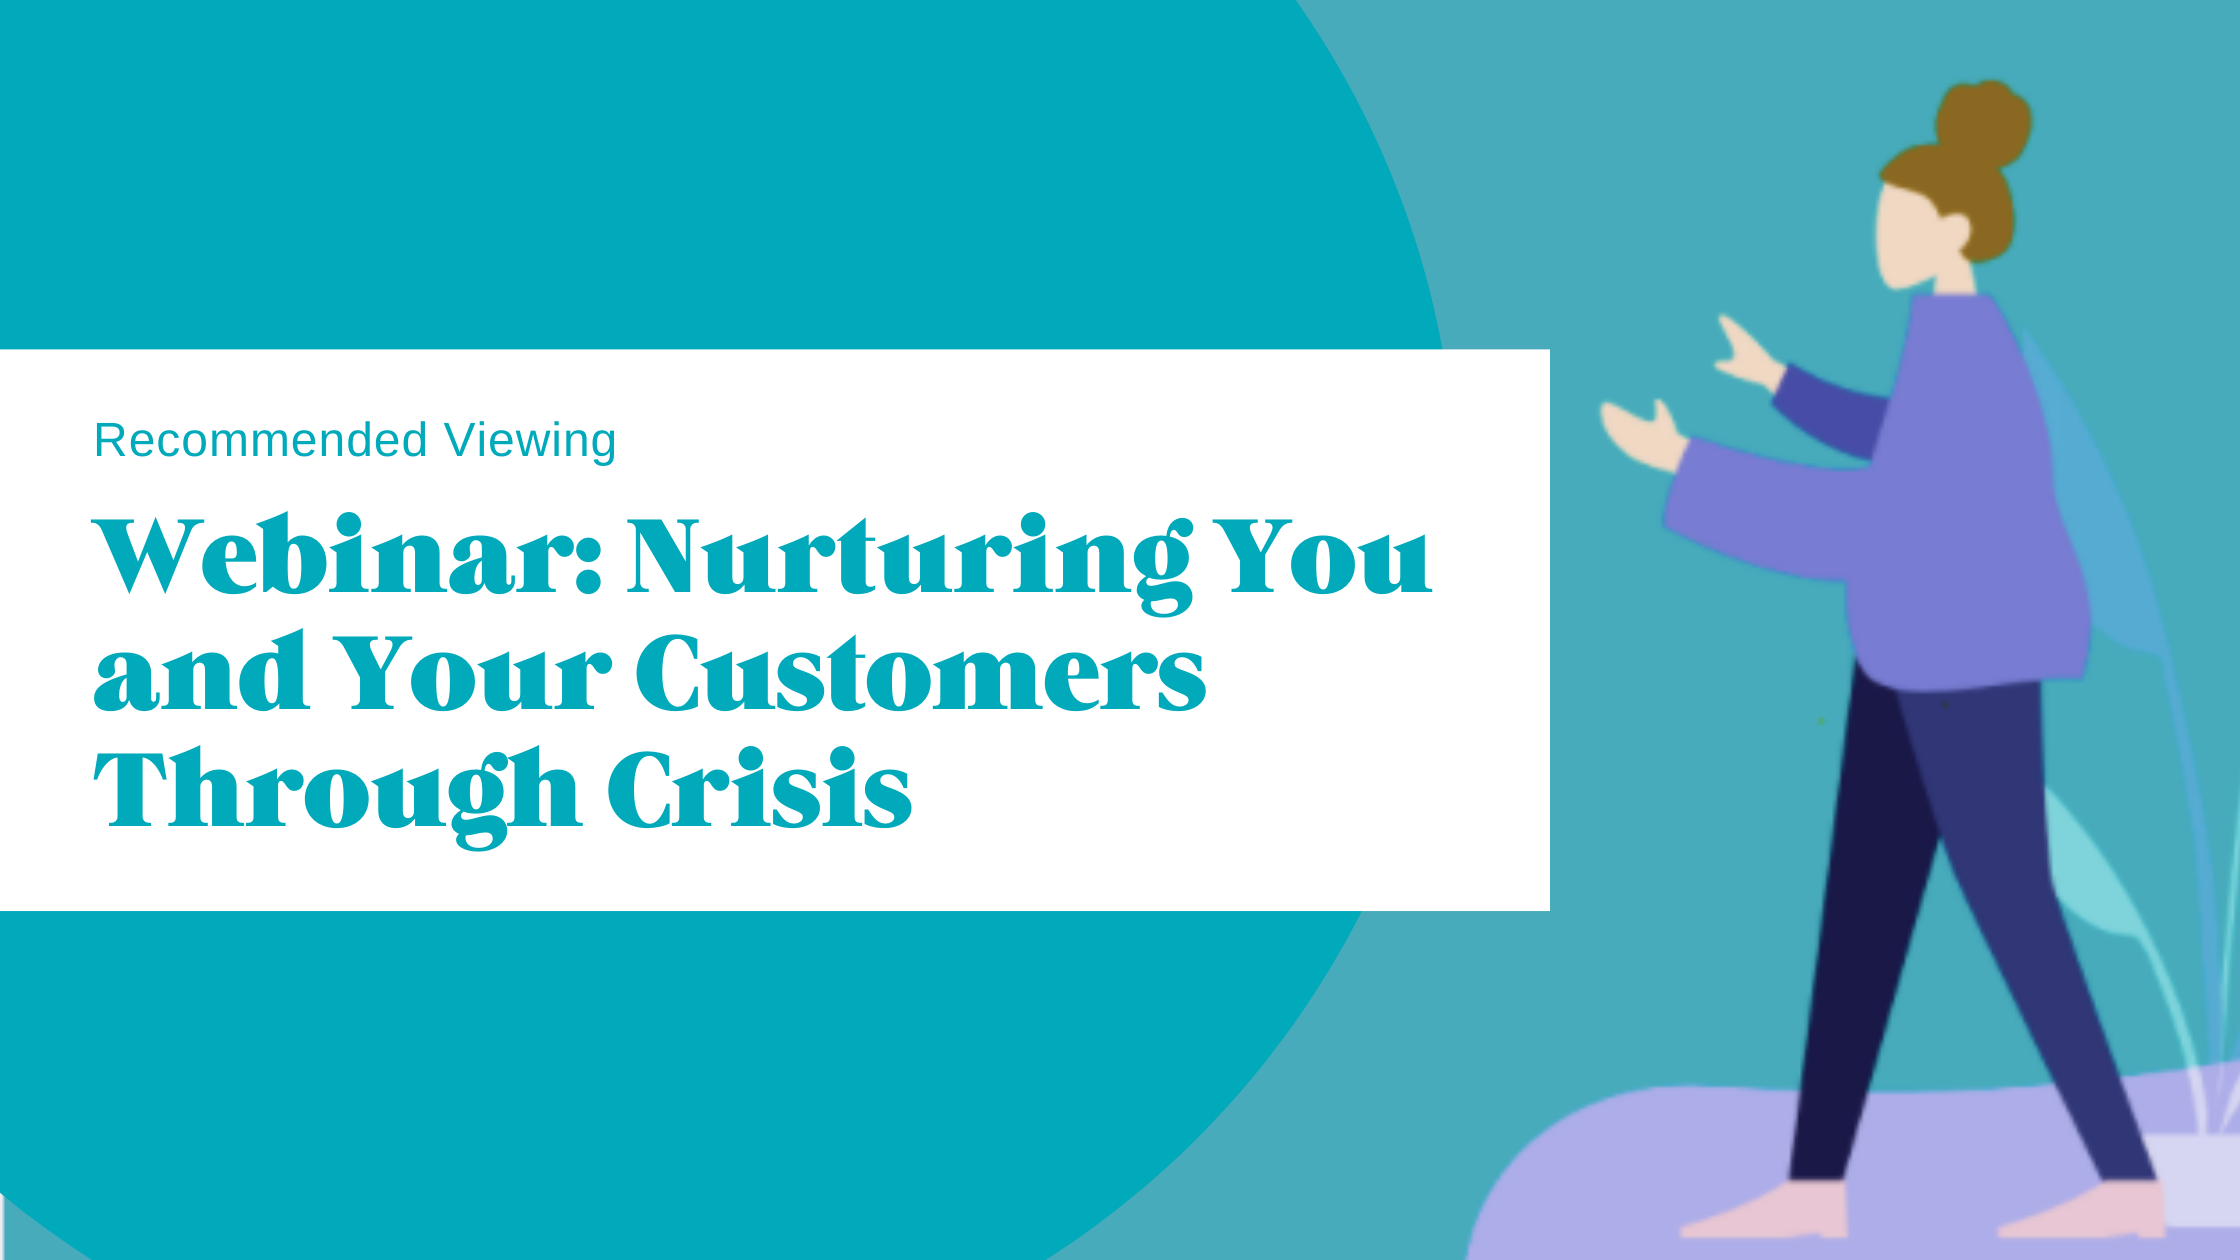 Recommended Viewing: Webinar Nurturing You and your Customers Through A Crisis